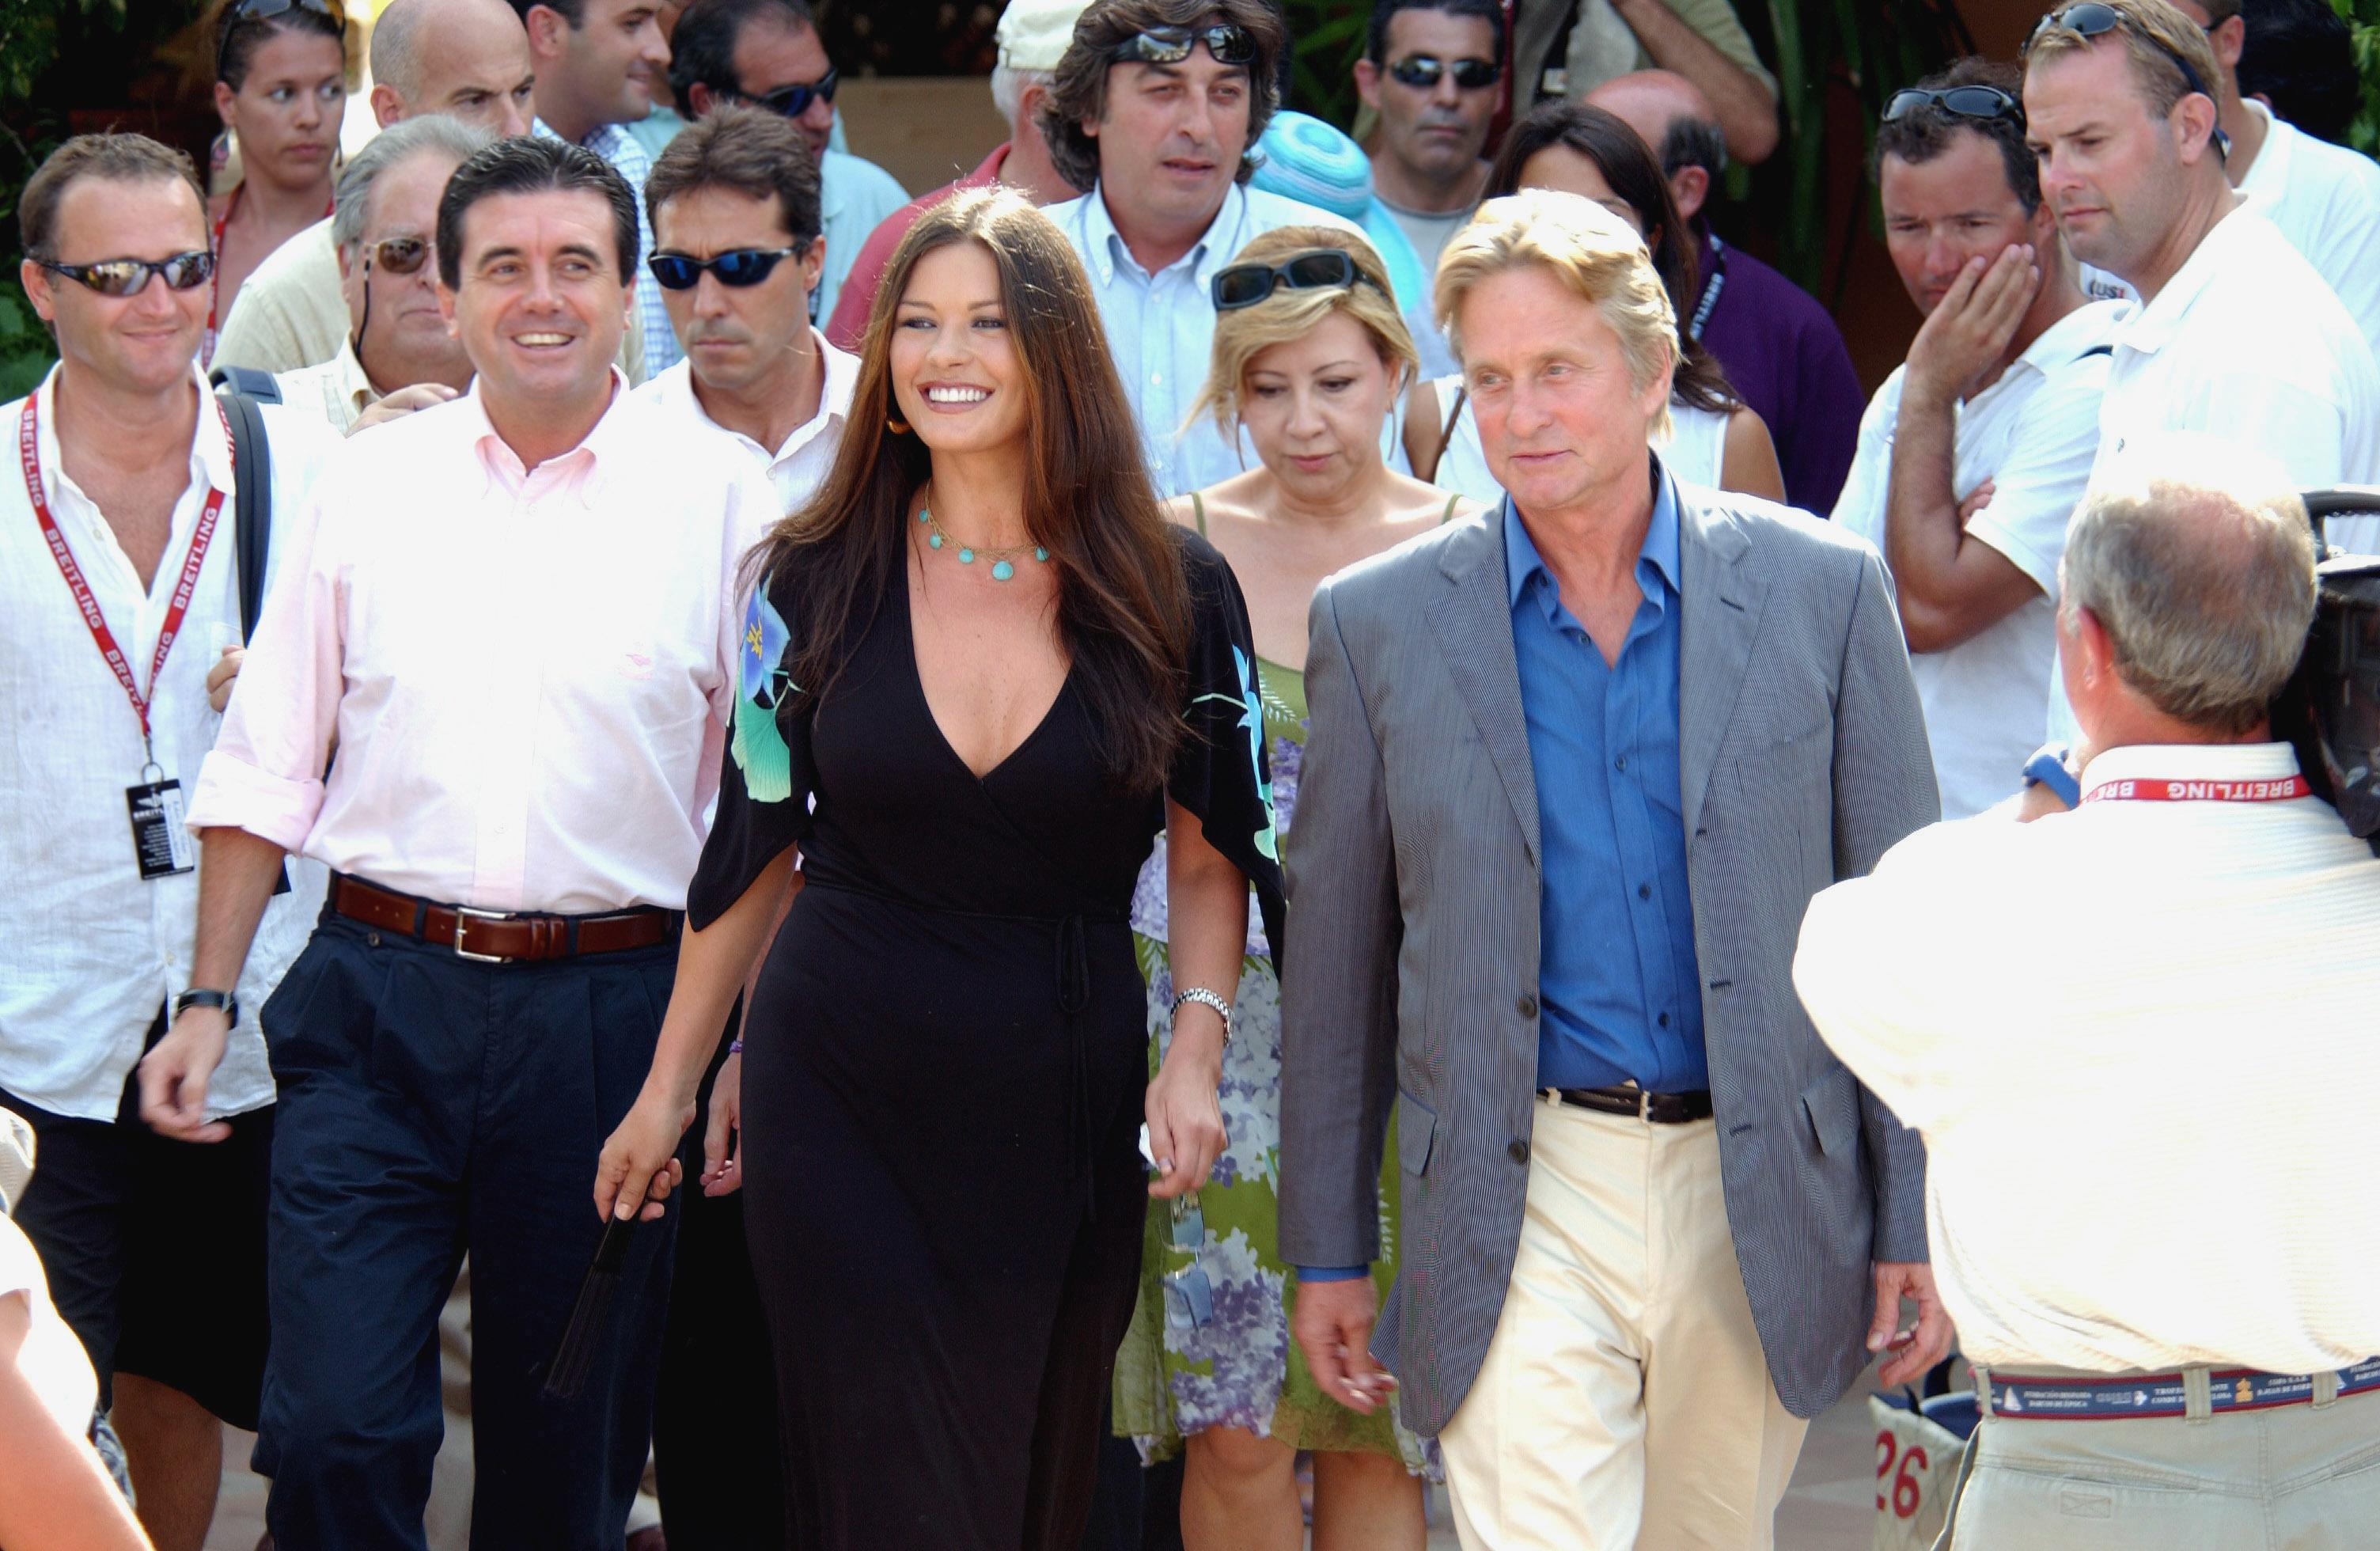 Michael Douglas and wife Catherine Zeta-Jones visit Spain to support the candidacy of the city of Palma de Mallorca as the seat of the 32th America's Cup regatta in 2007. (Photo by Barmar/Corbis via Getty Images)